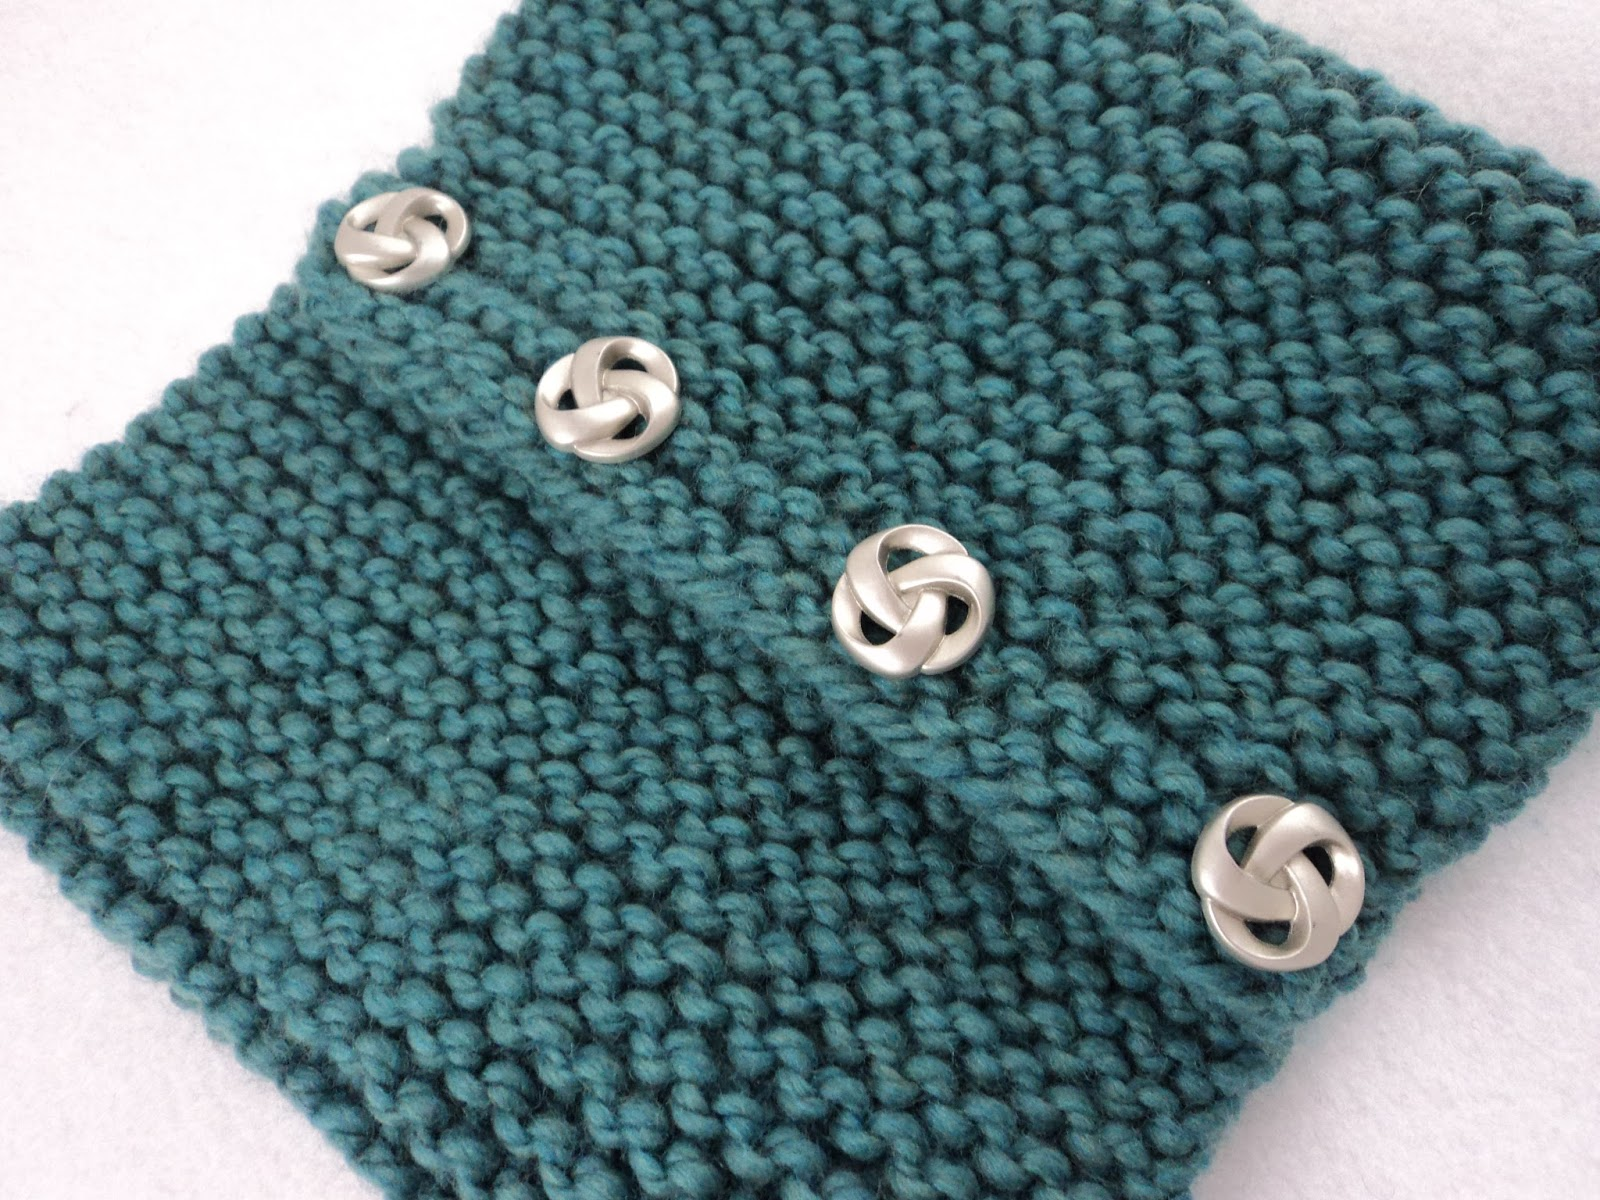 New Knitting Patterns : moniqueraedesigns: New* FREE Button Cowl Knit Pattern